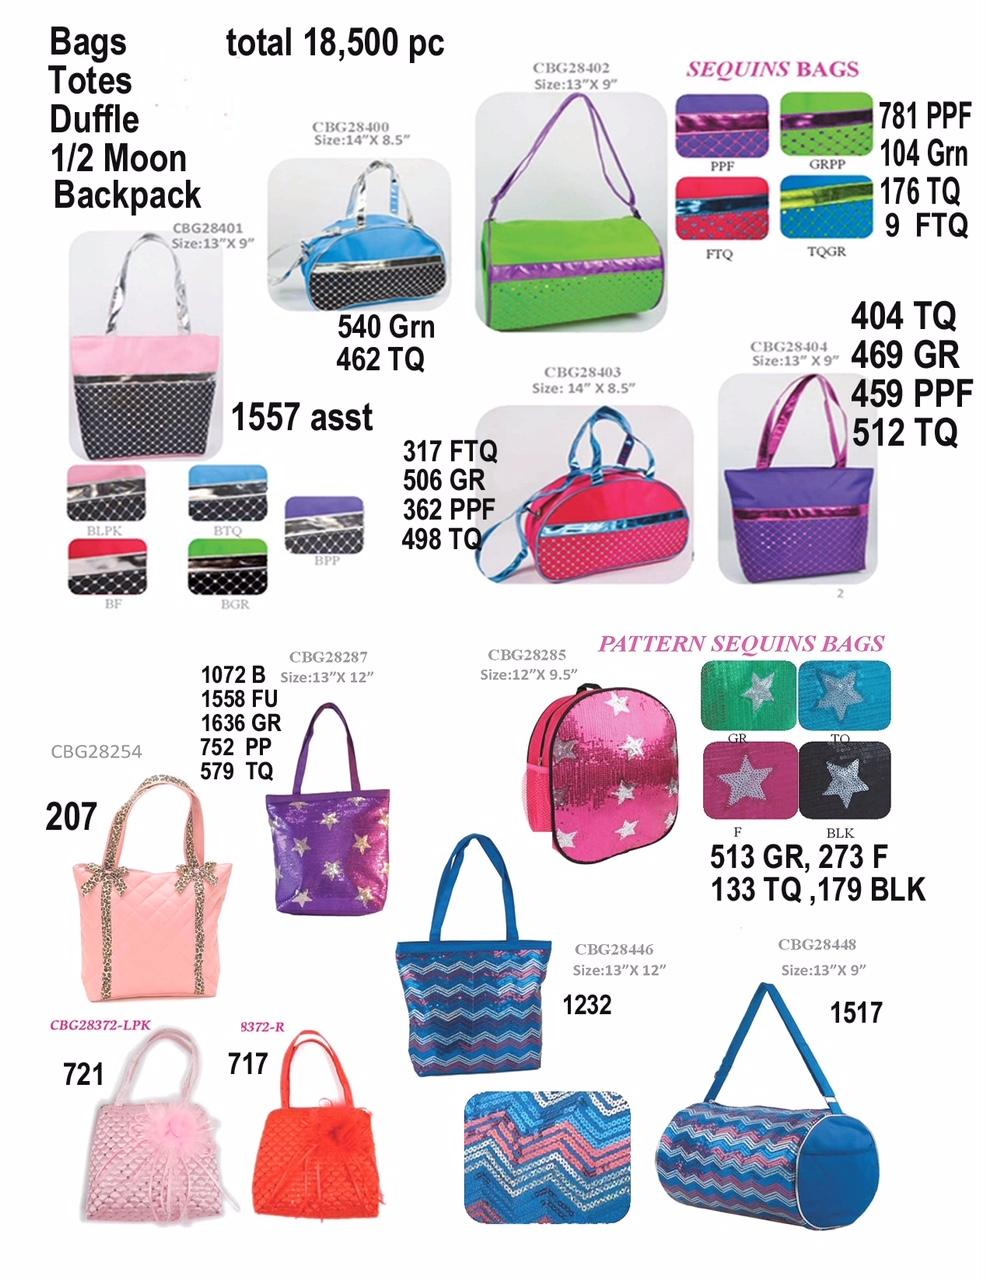 32115 - Assorted Ladies Duffle Bags / Purses & Tube Tops USA